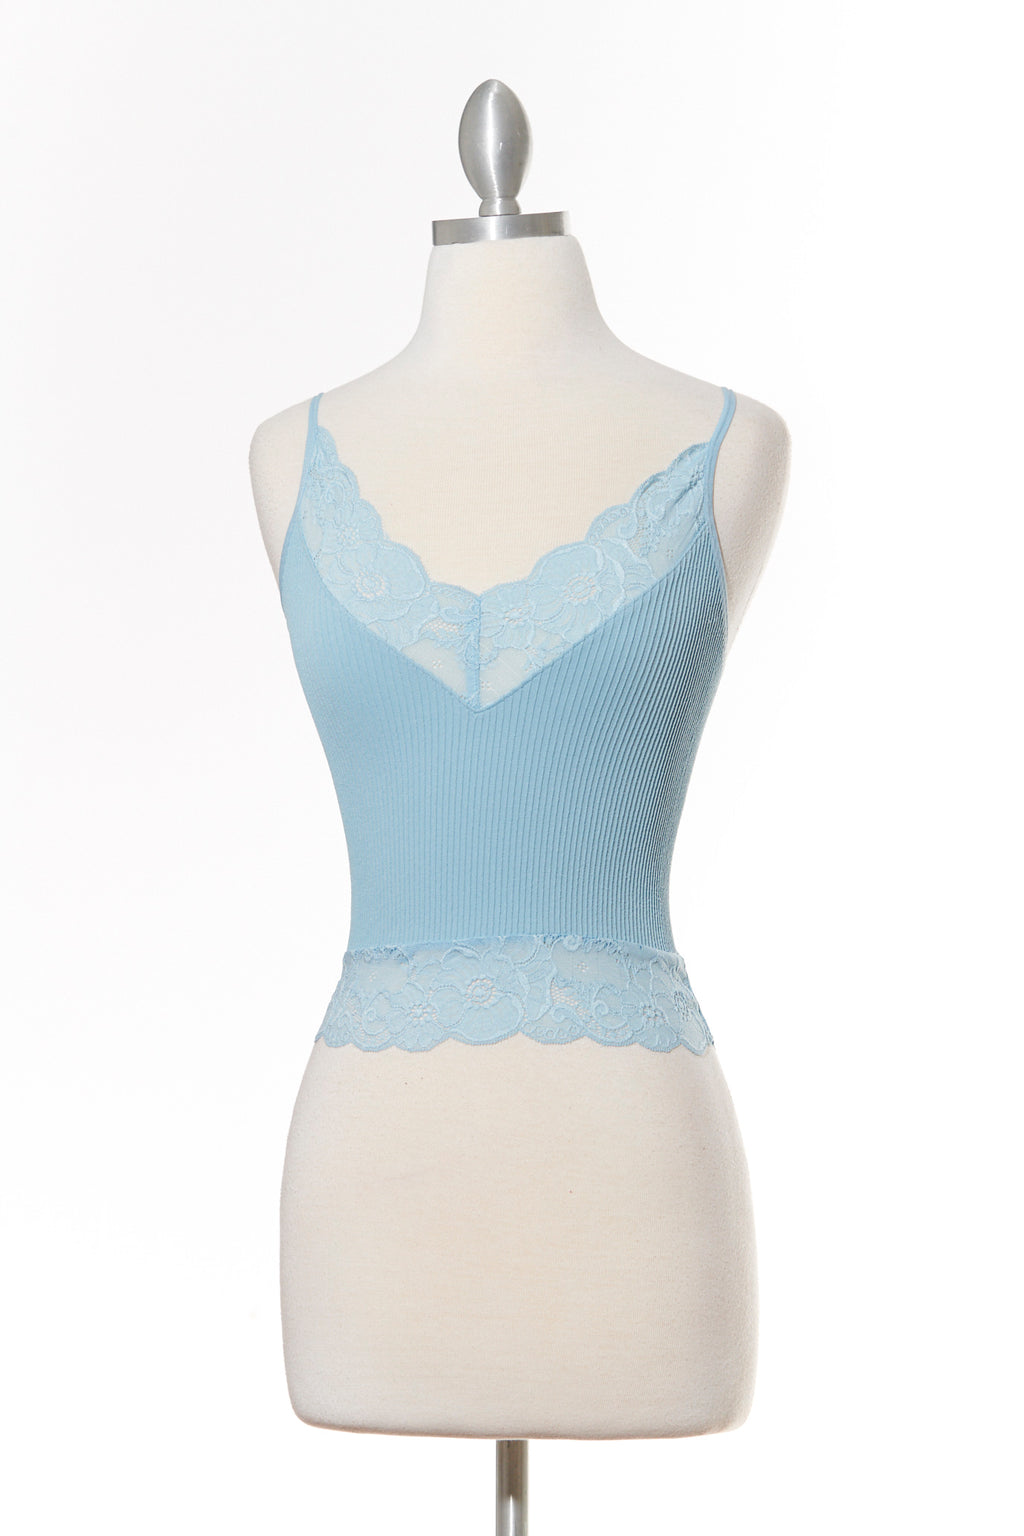 All Day High Lace Blue Tank Top